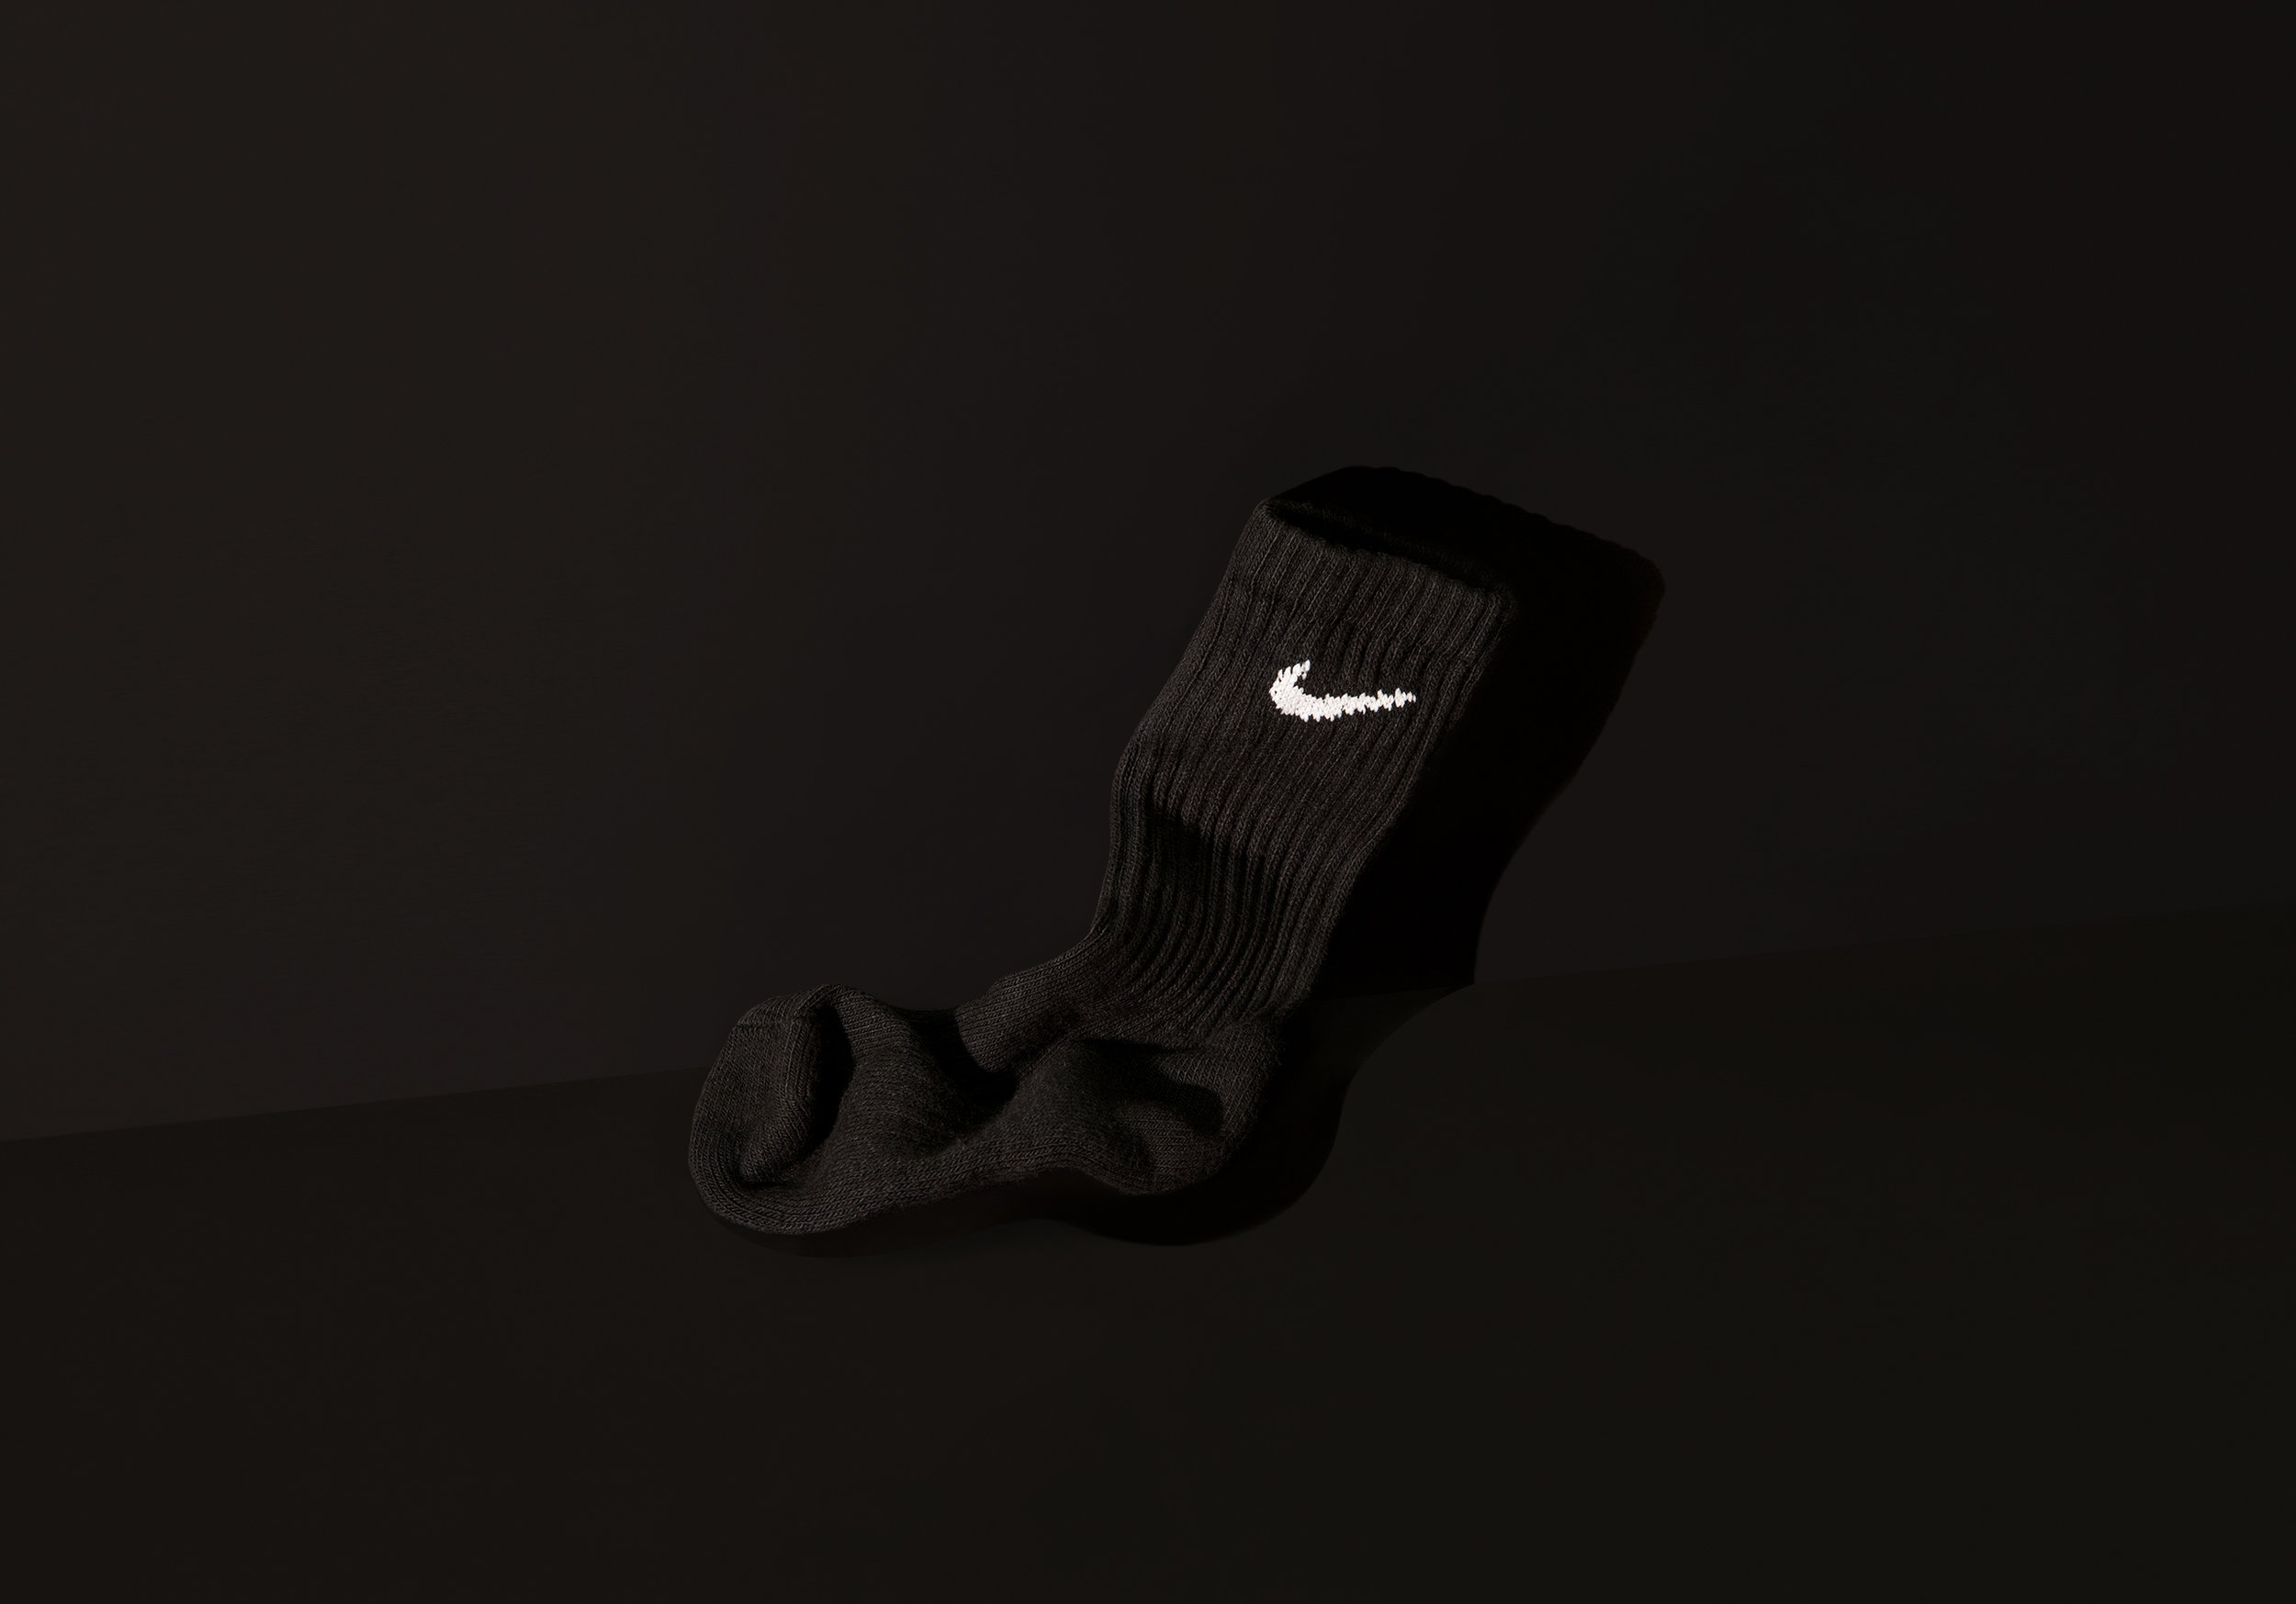 Nike_Inception of Desire_Claire Sunho Lee.jpg